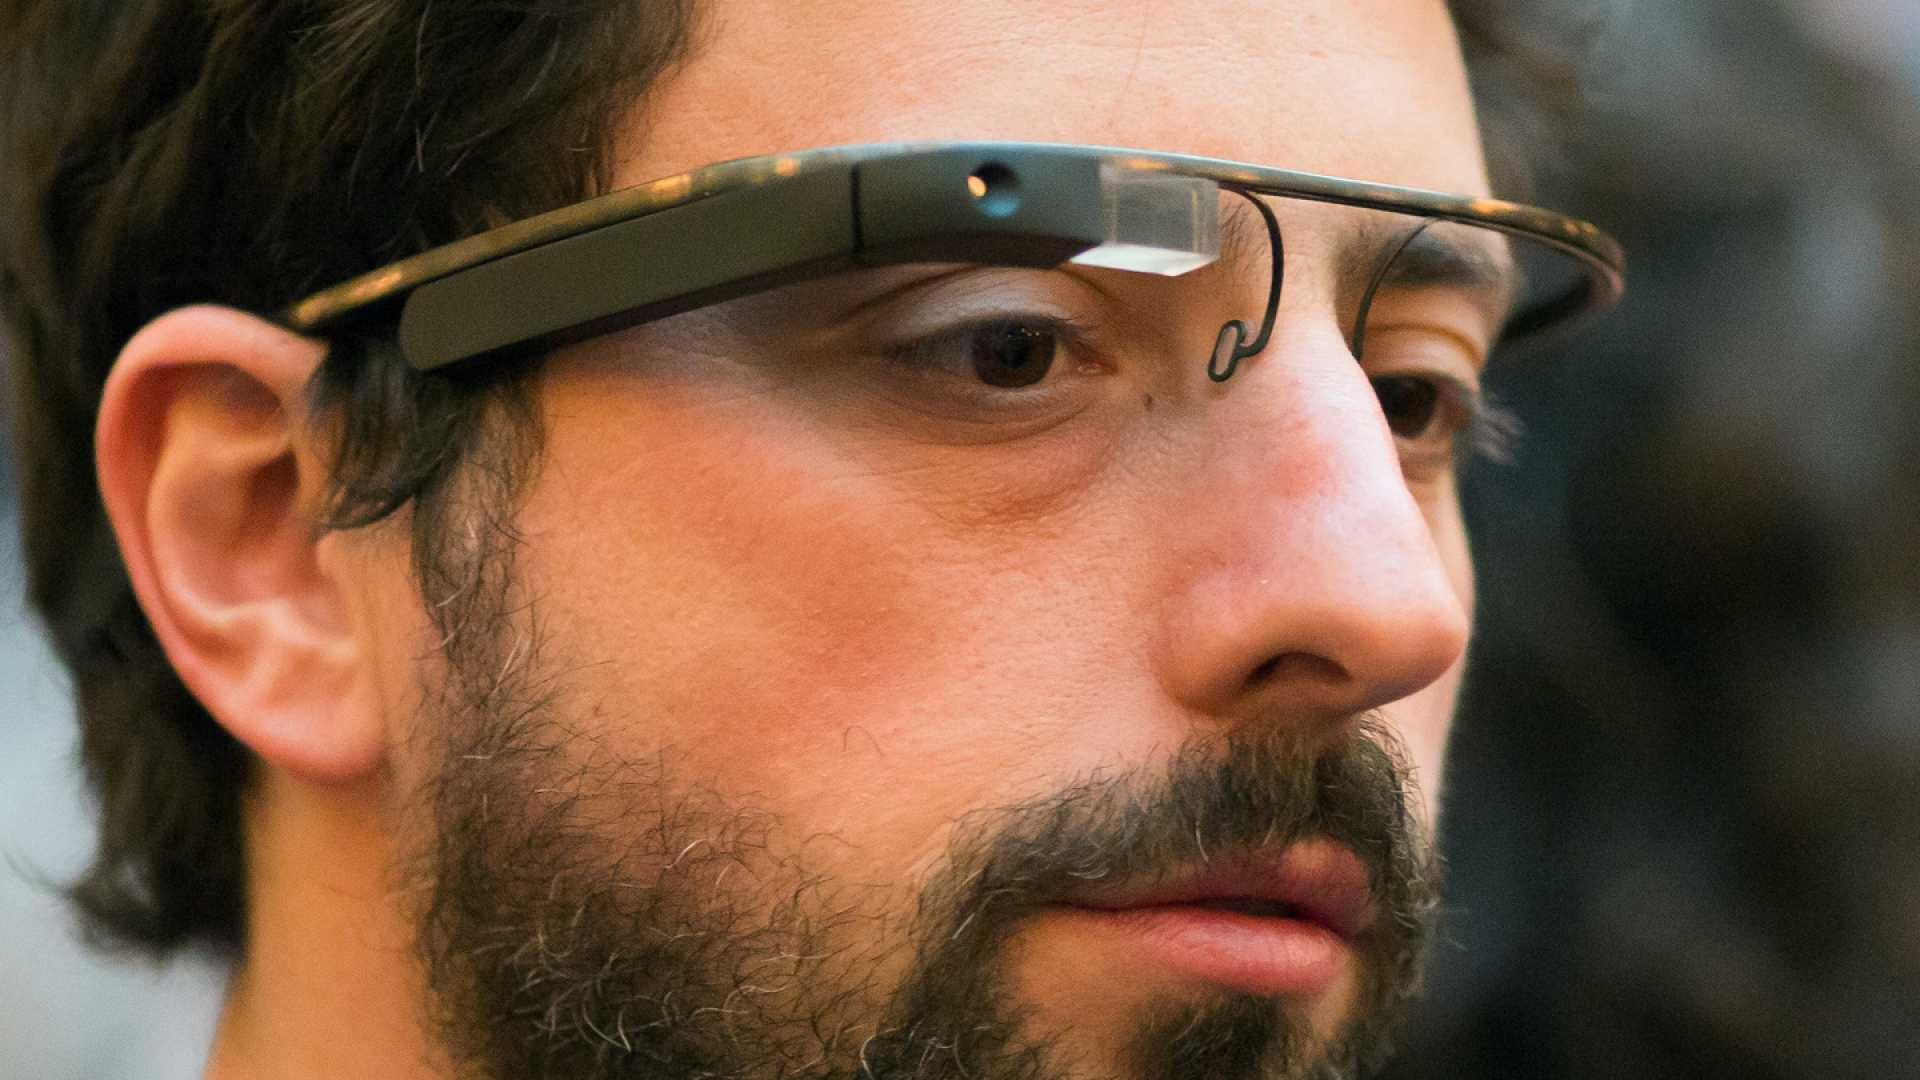 Google Co-Founder Sergey Brin sports the new Google Glasses at a benefit for the foundation Fighting Blindness in San Francisco, CA.